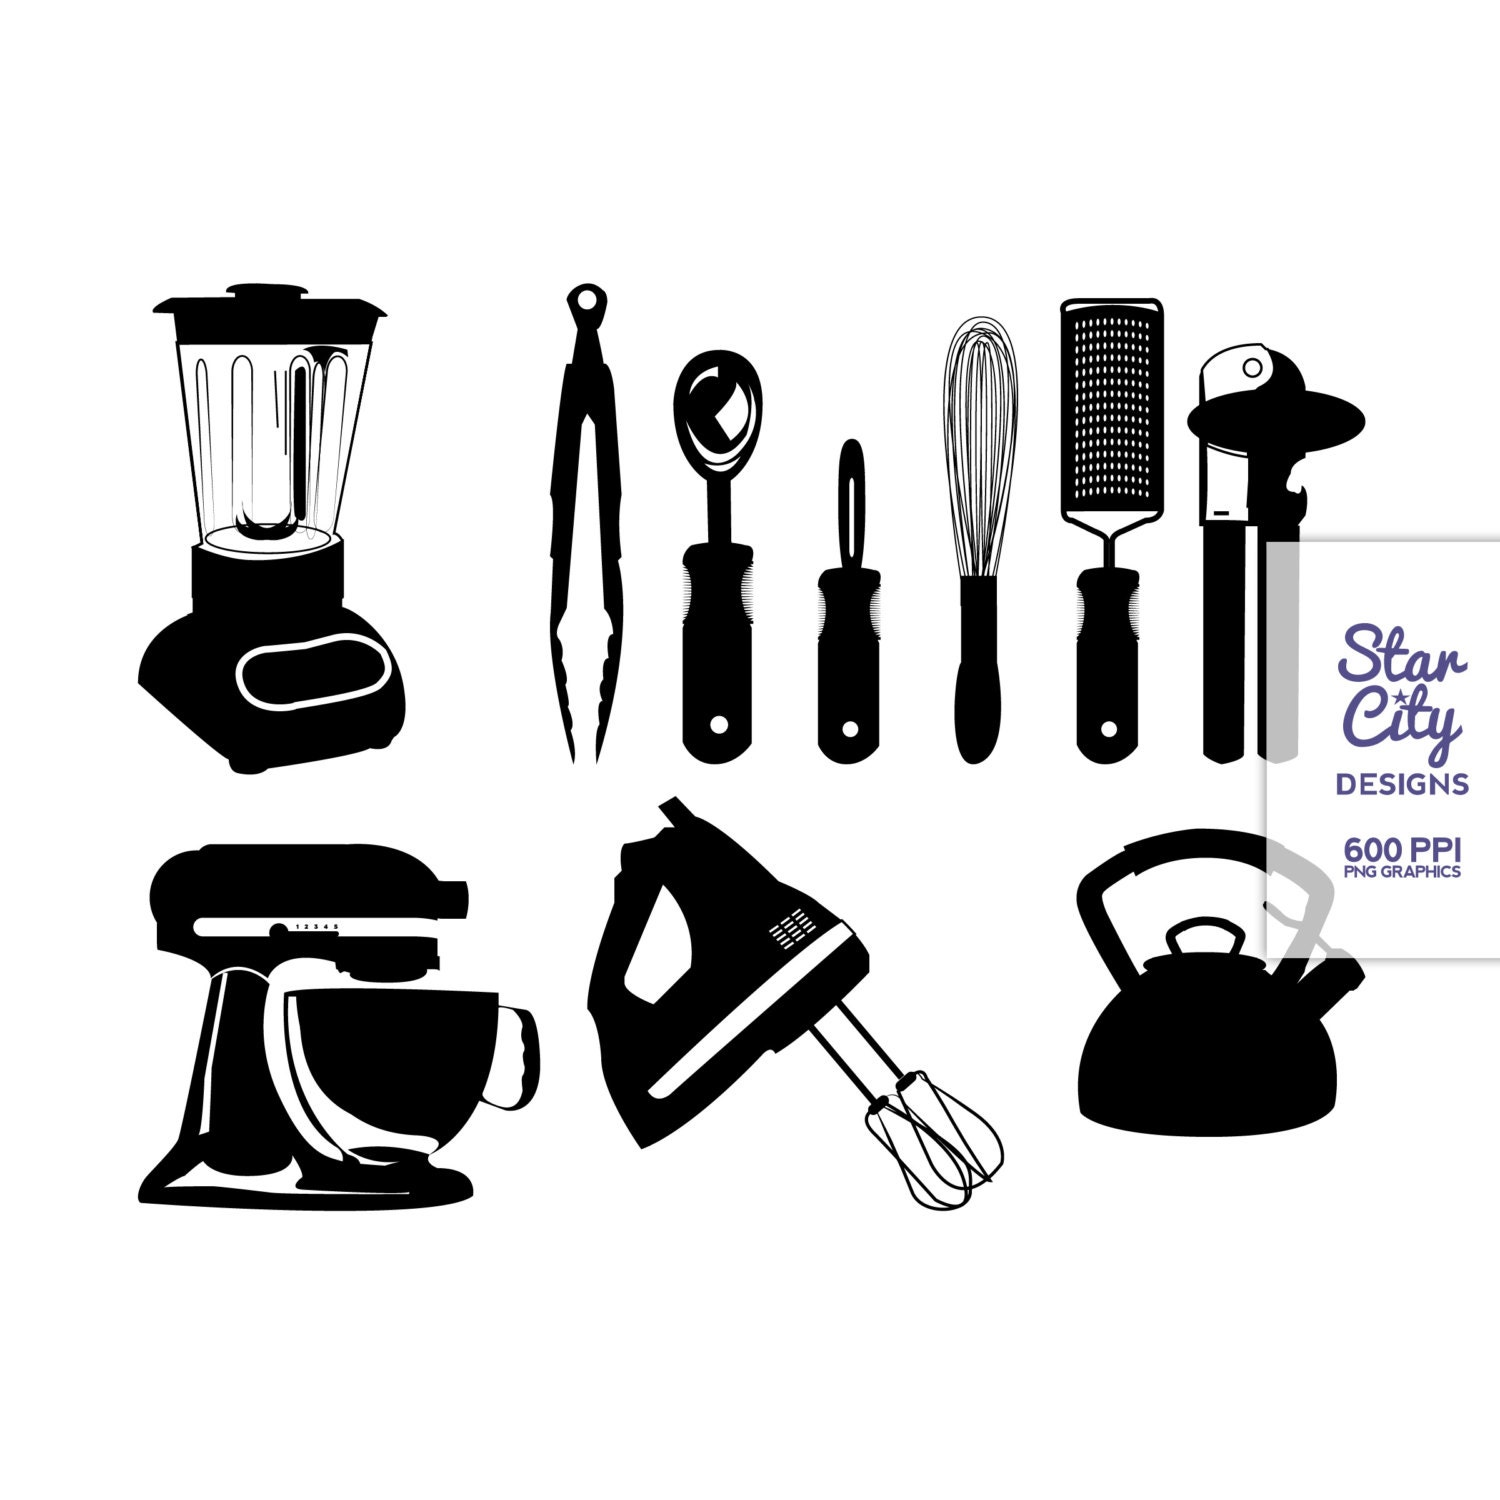 Hand Mixer Silhouette ~ The gallery for gt hand mixer clipart